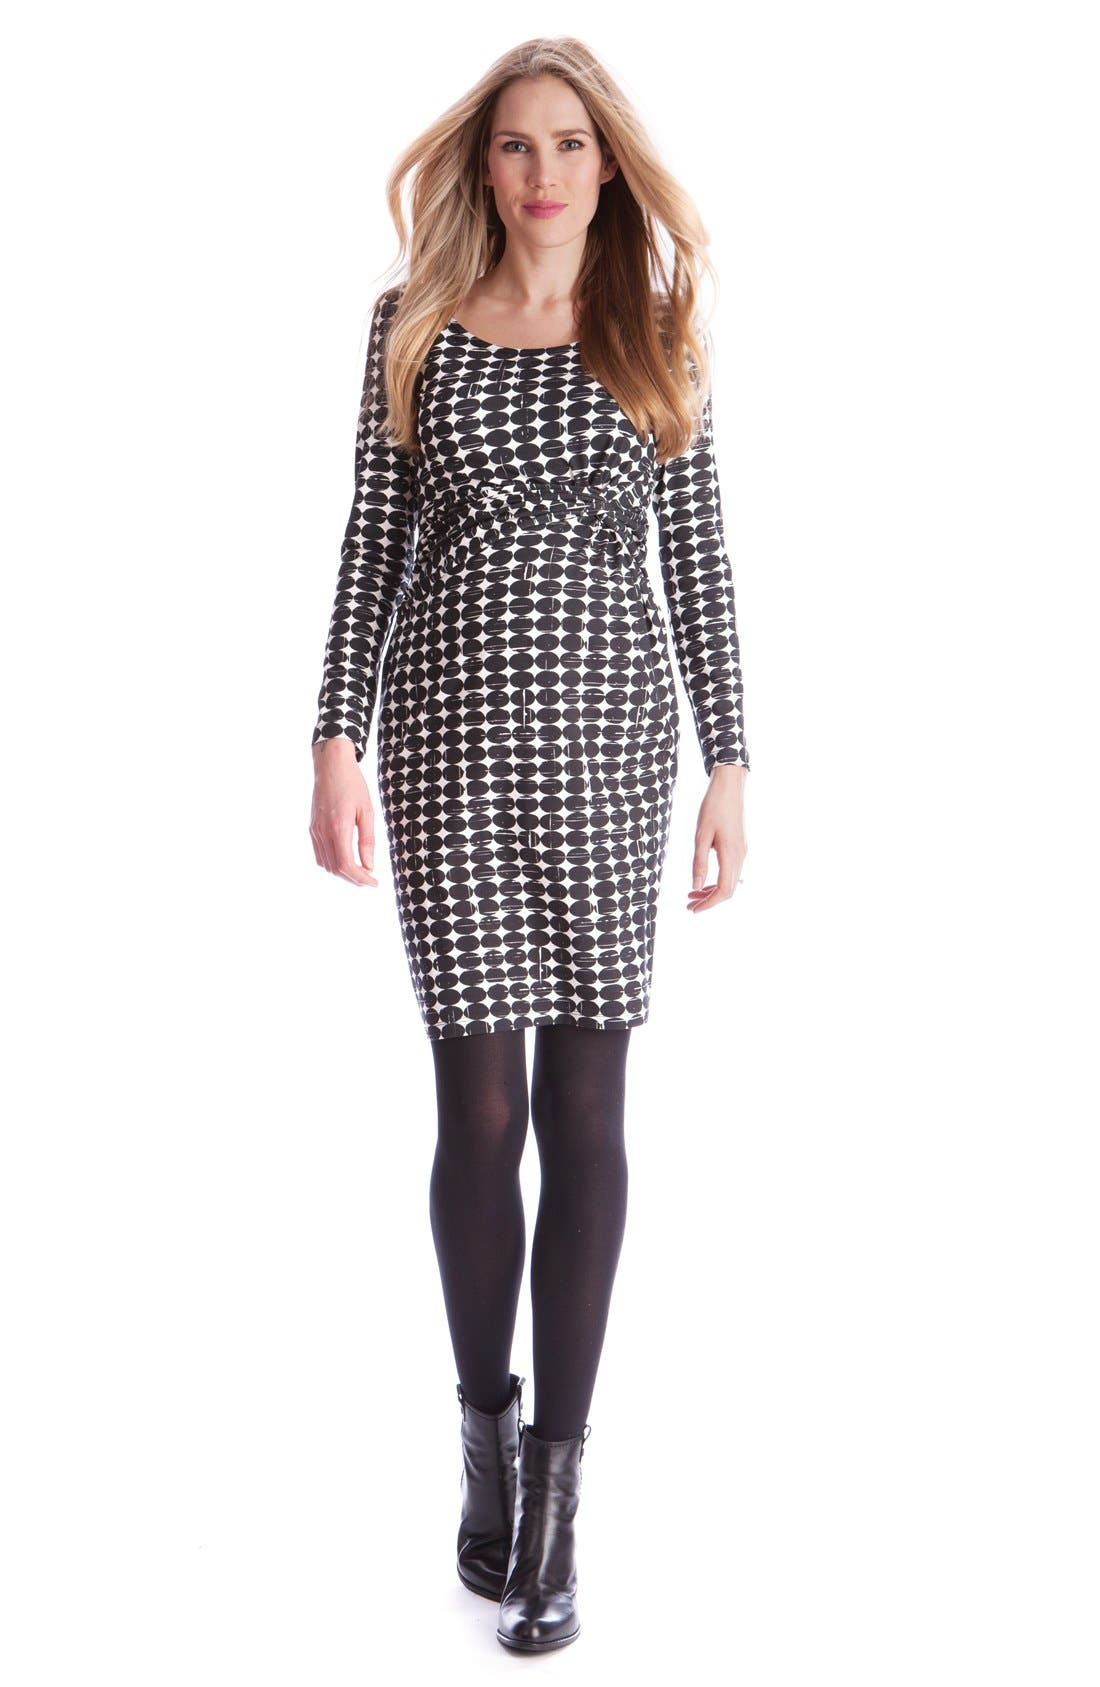 Seraphine 'Audrina' Circle Print Maternity Dress